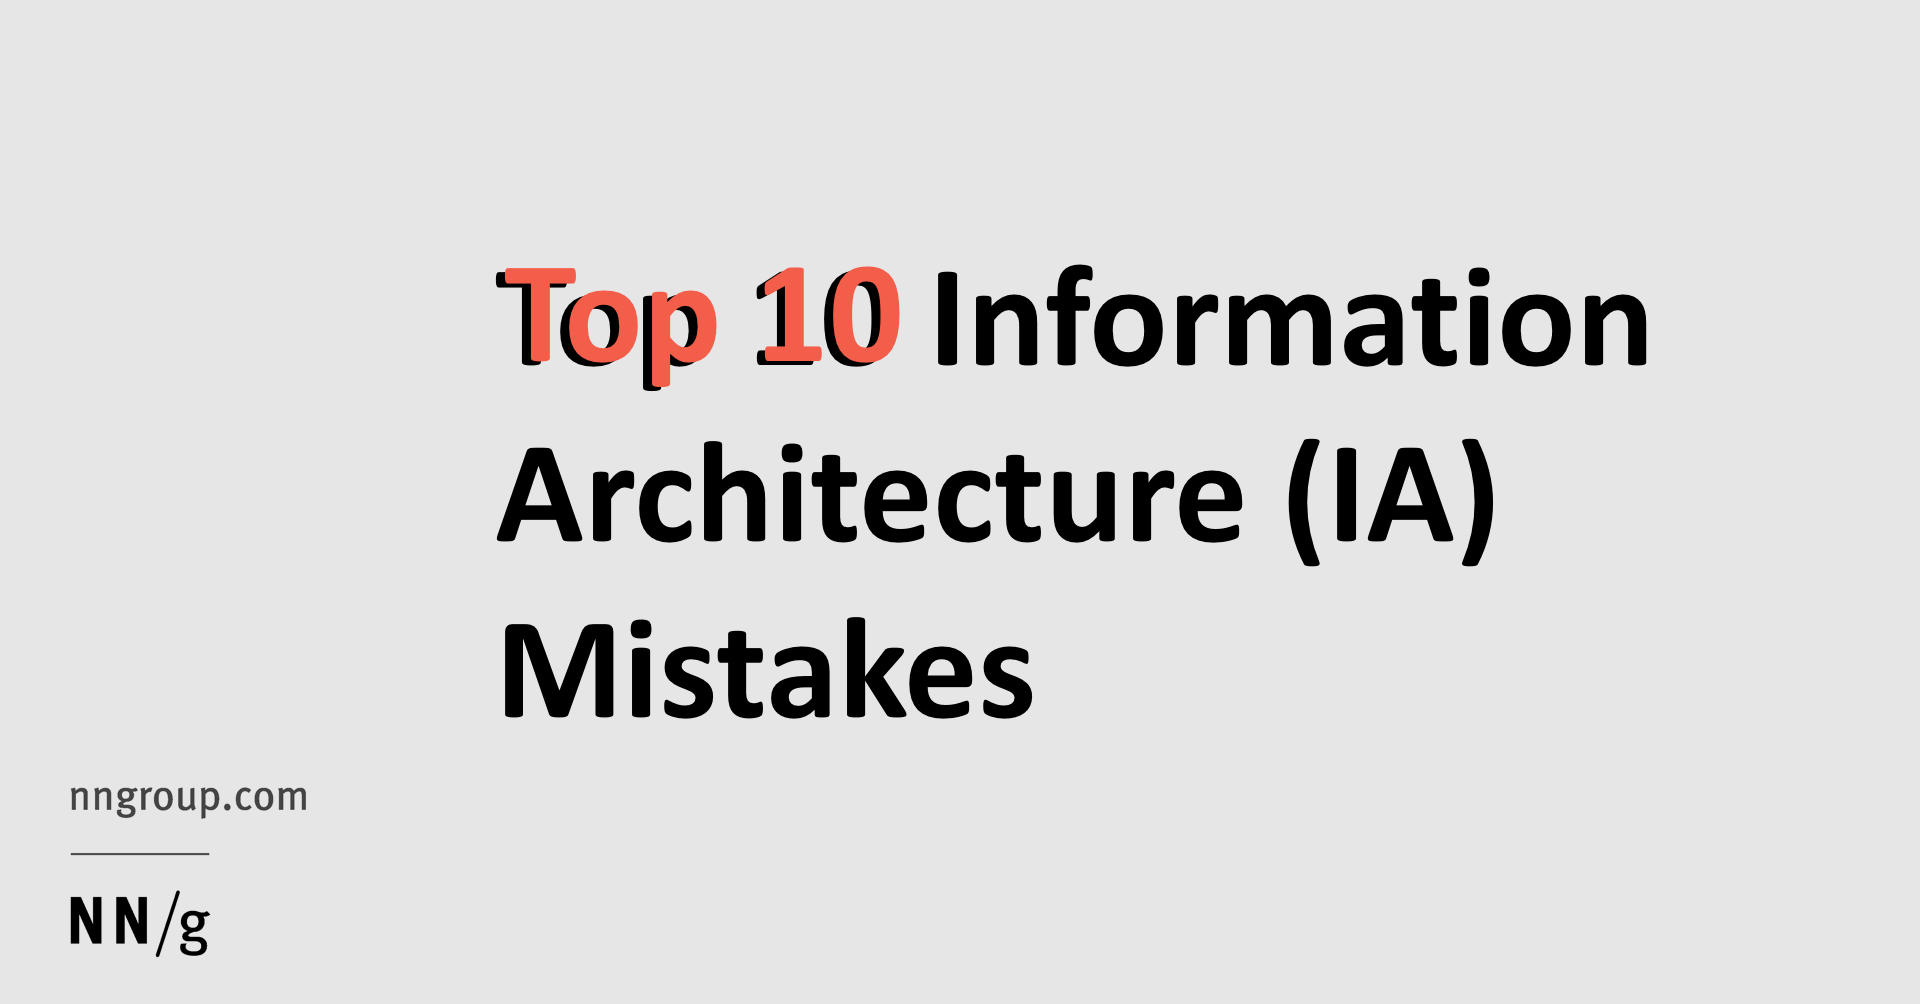 Top 10 Information Architecture (IA) Mistakes